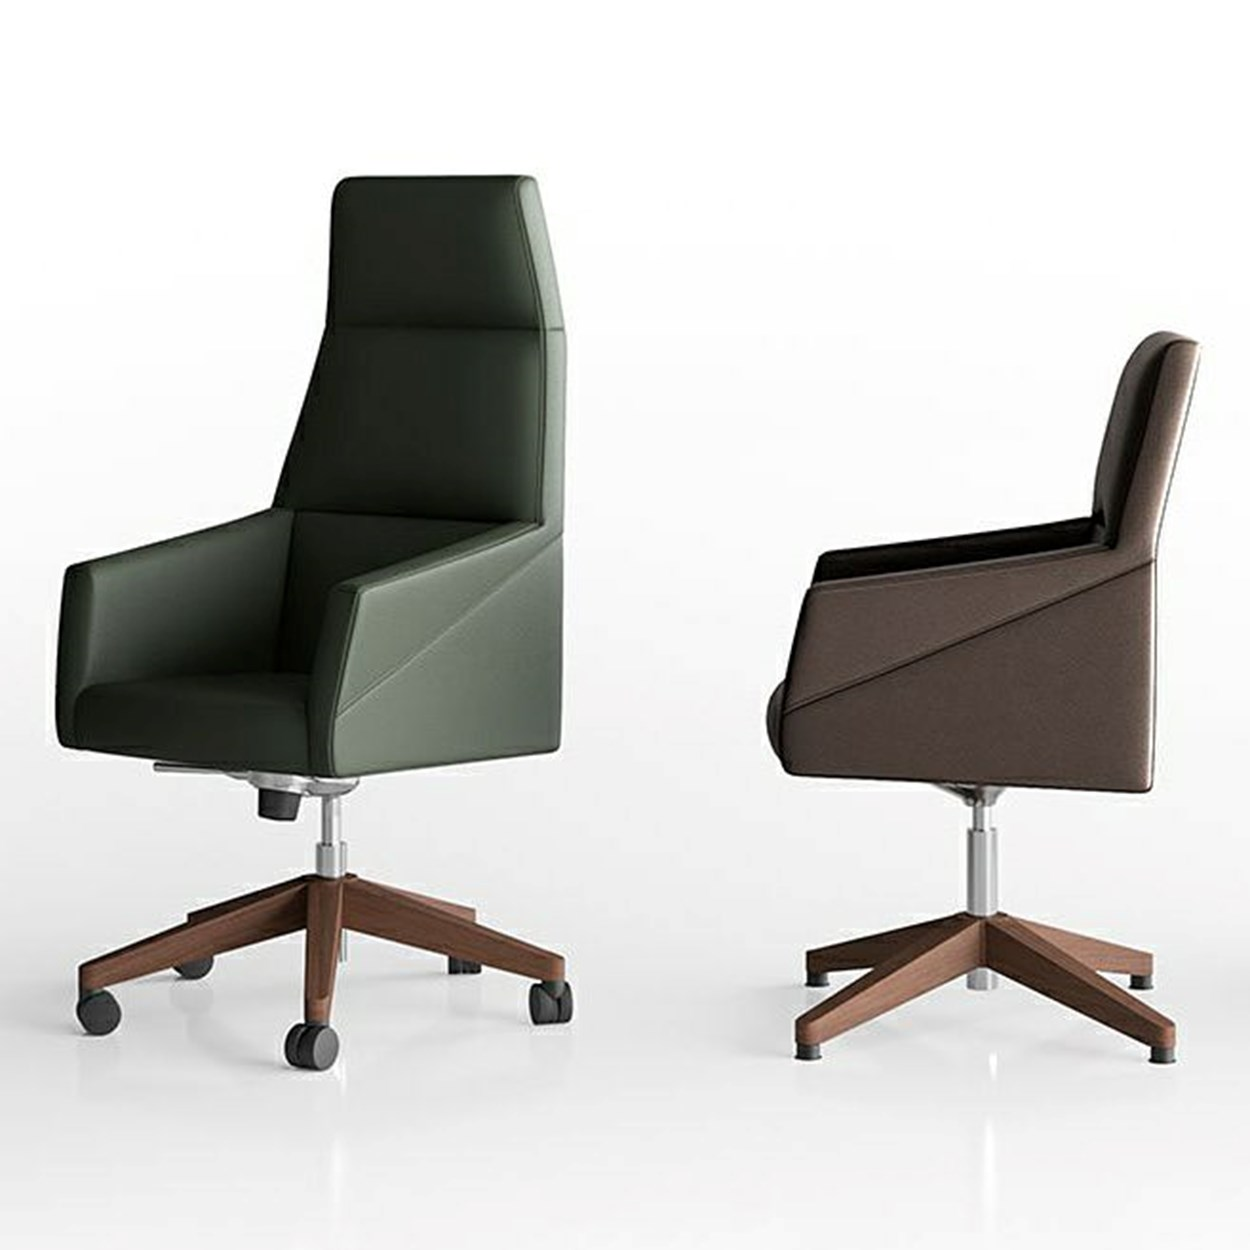 ofifran-ray-work-office-chairs.jpg